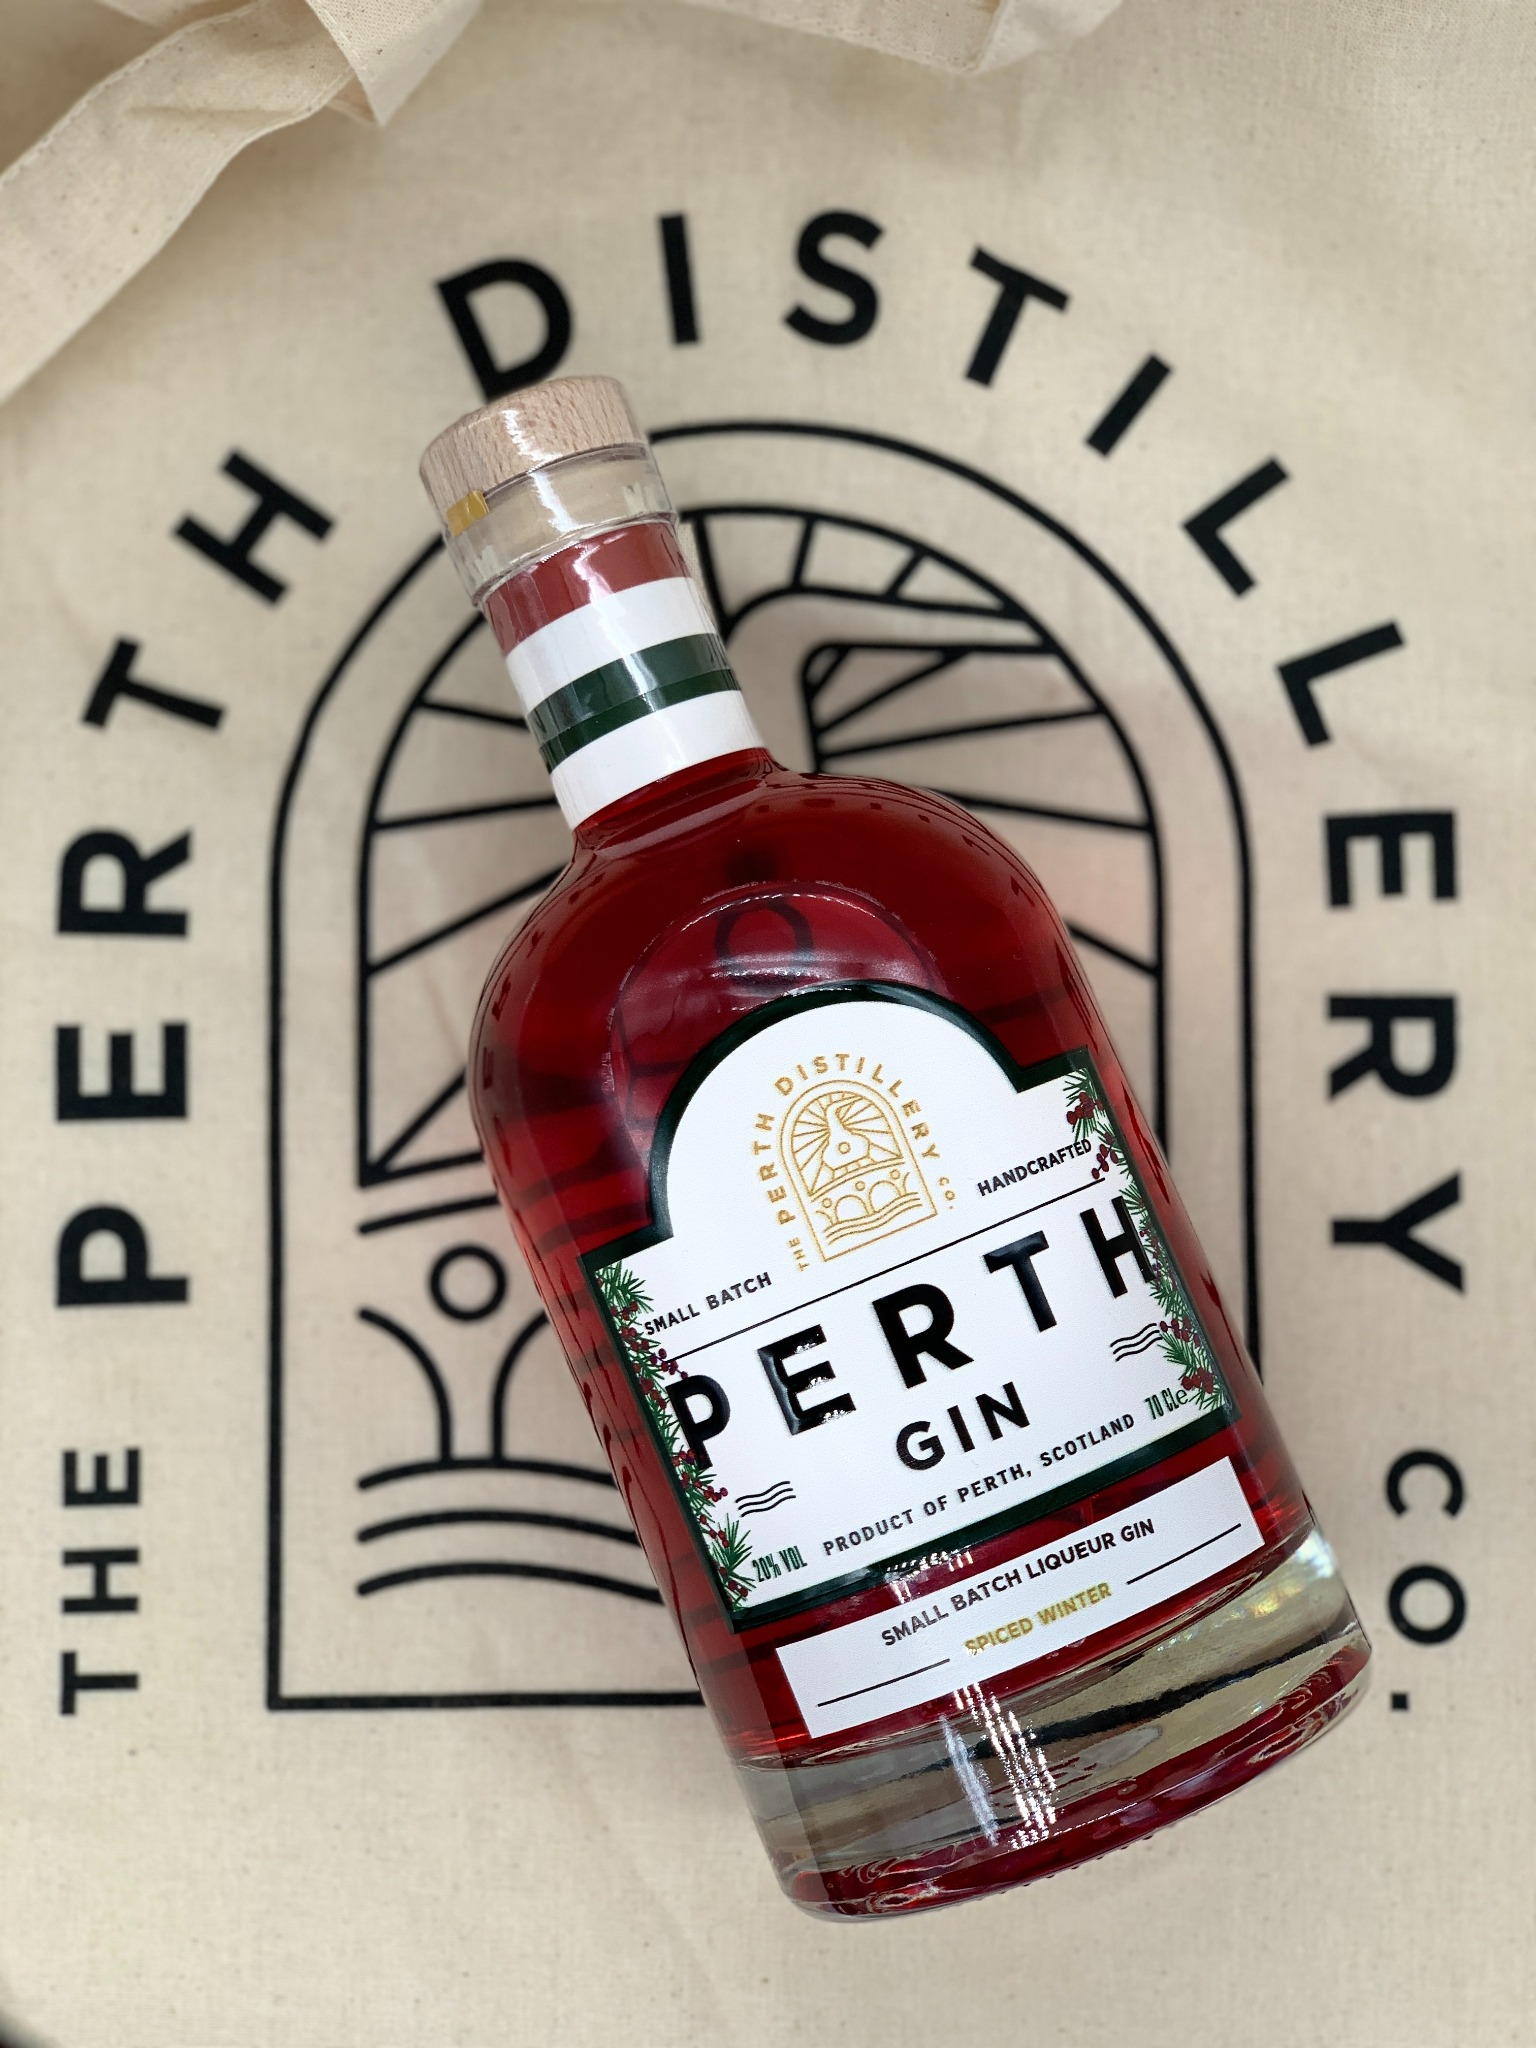 Perth Gin Winter Spiced Gin Liqueur 70cl - MOTHERS DAY Delivery THURSDAY 11th March 2021